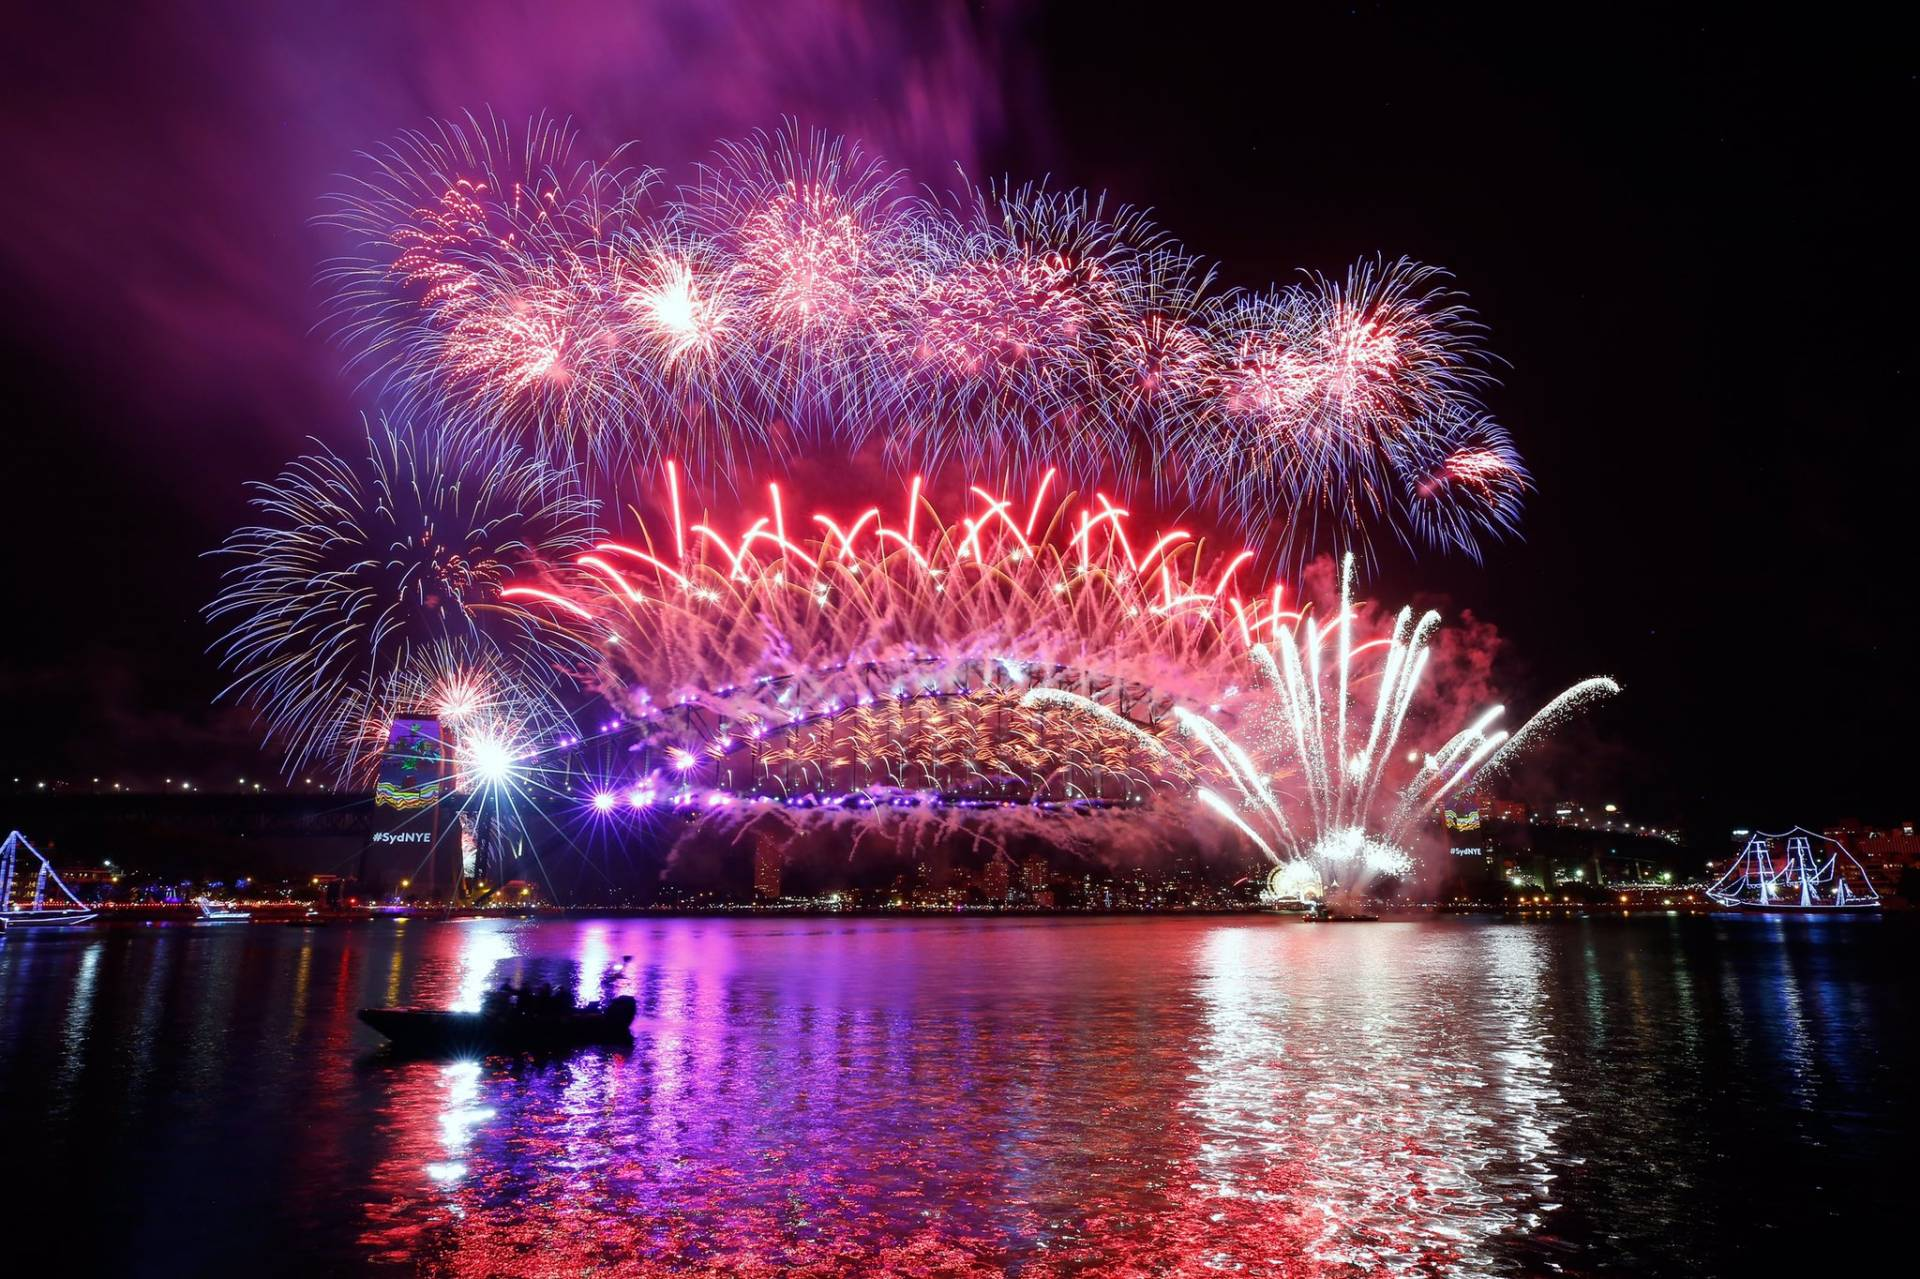 New Year's Eve in Australia